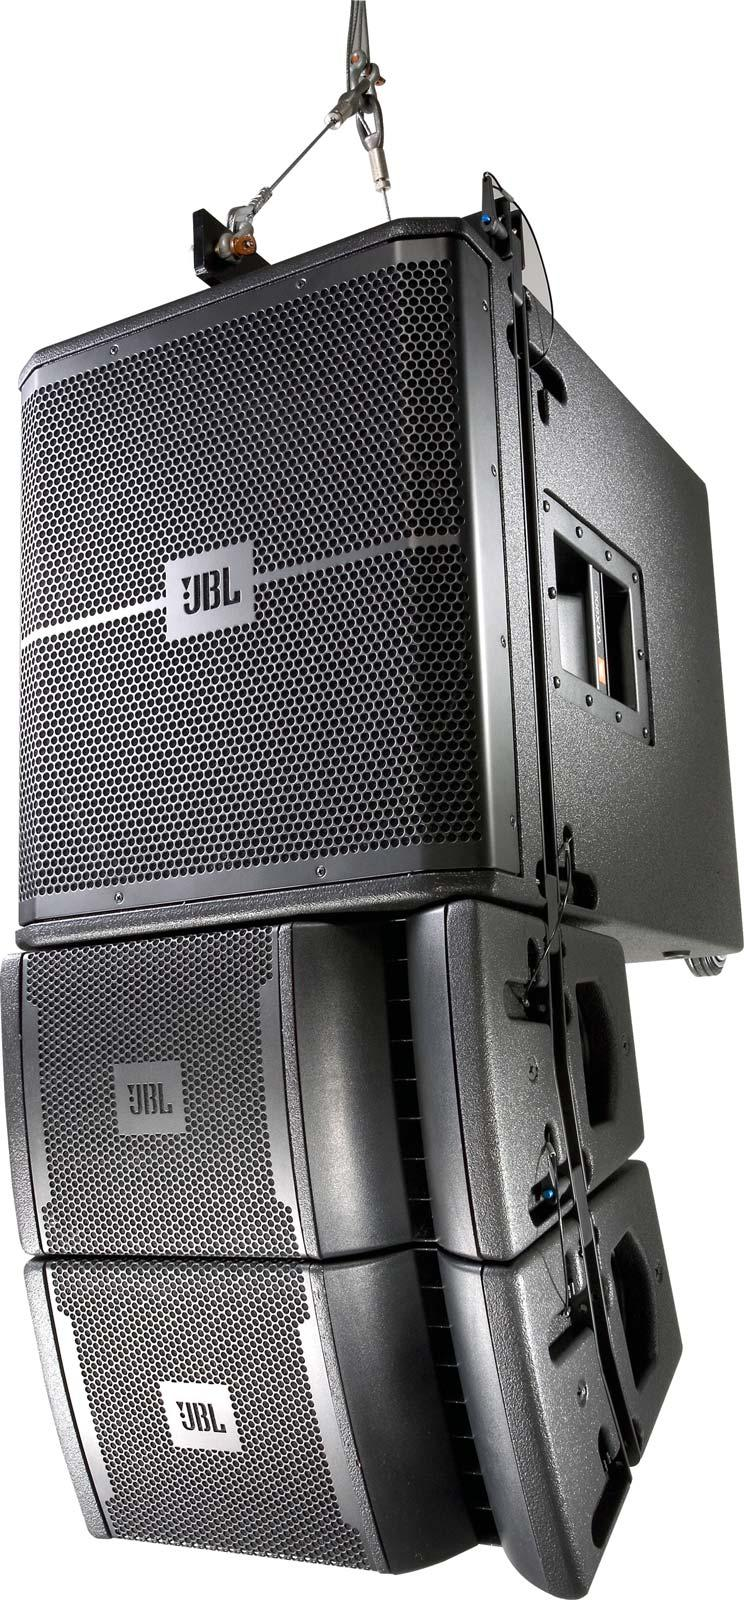 Jbl Vrx915s 15 Quot High Powered Line Array Flying Subwoofer